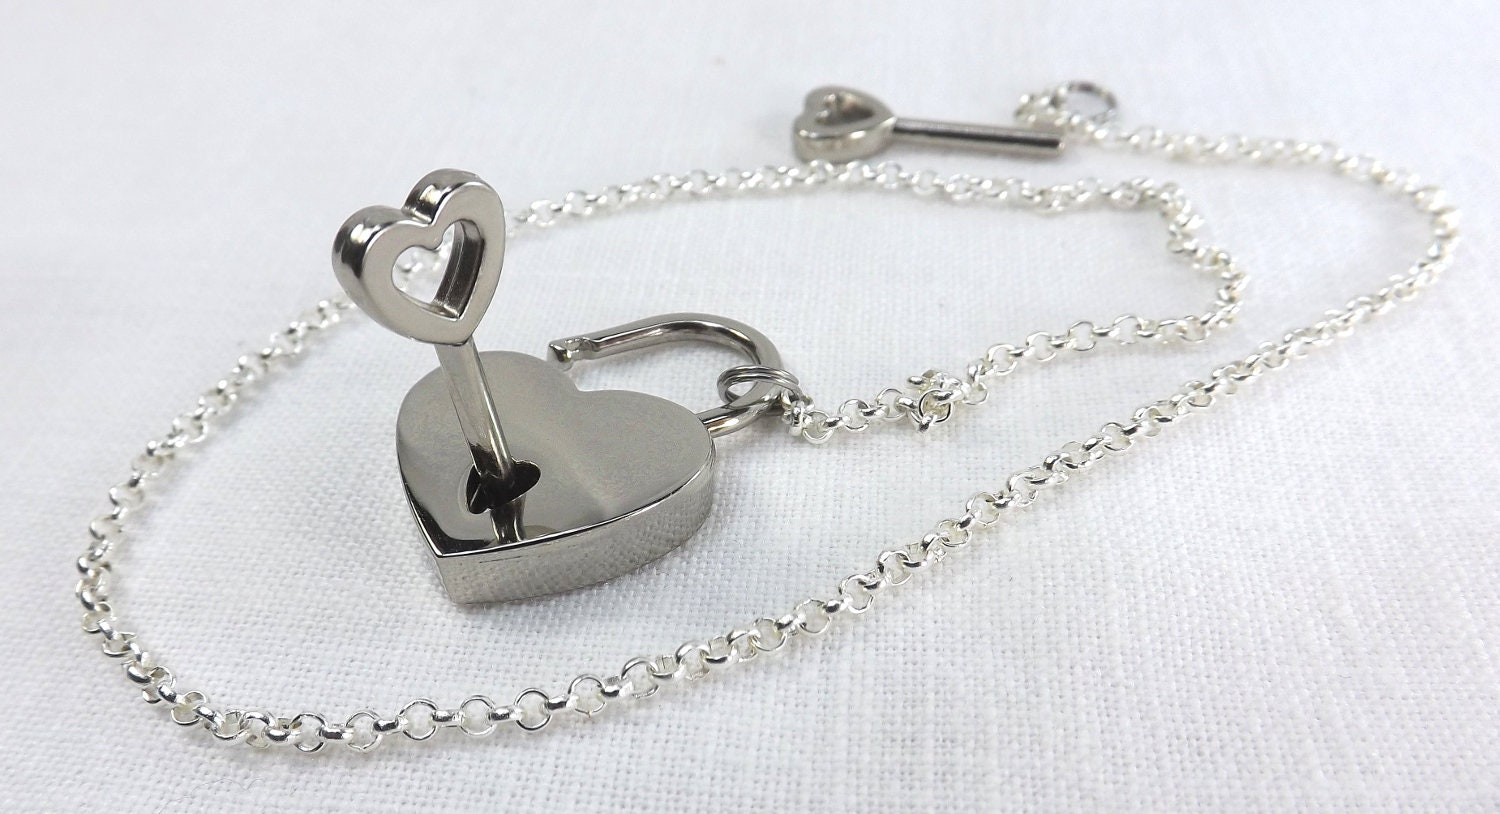 discreet day collar submissive collar heart lock slave collar submissive jewelry lock and chain choker - product image